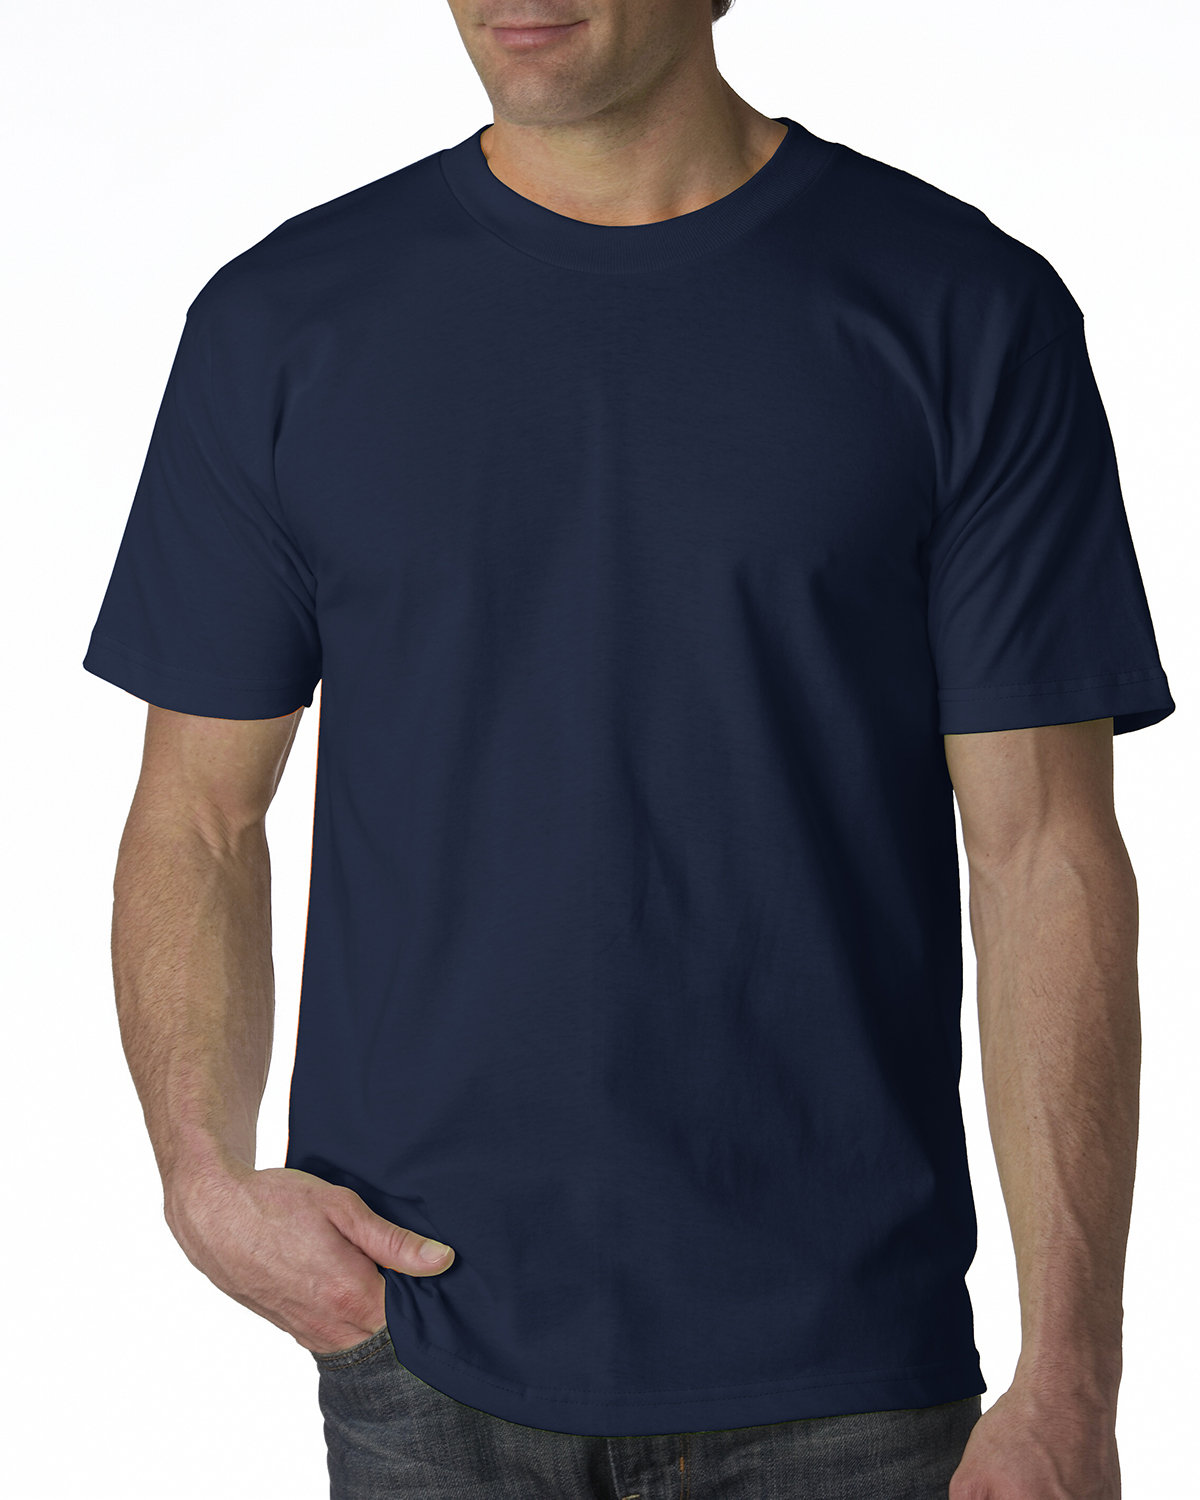 Bayside Adult 6.1 oz., 100% Cotton T-Shirt NAVY